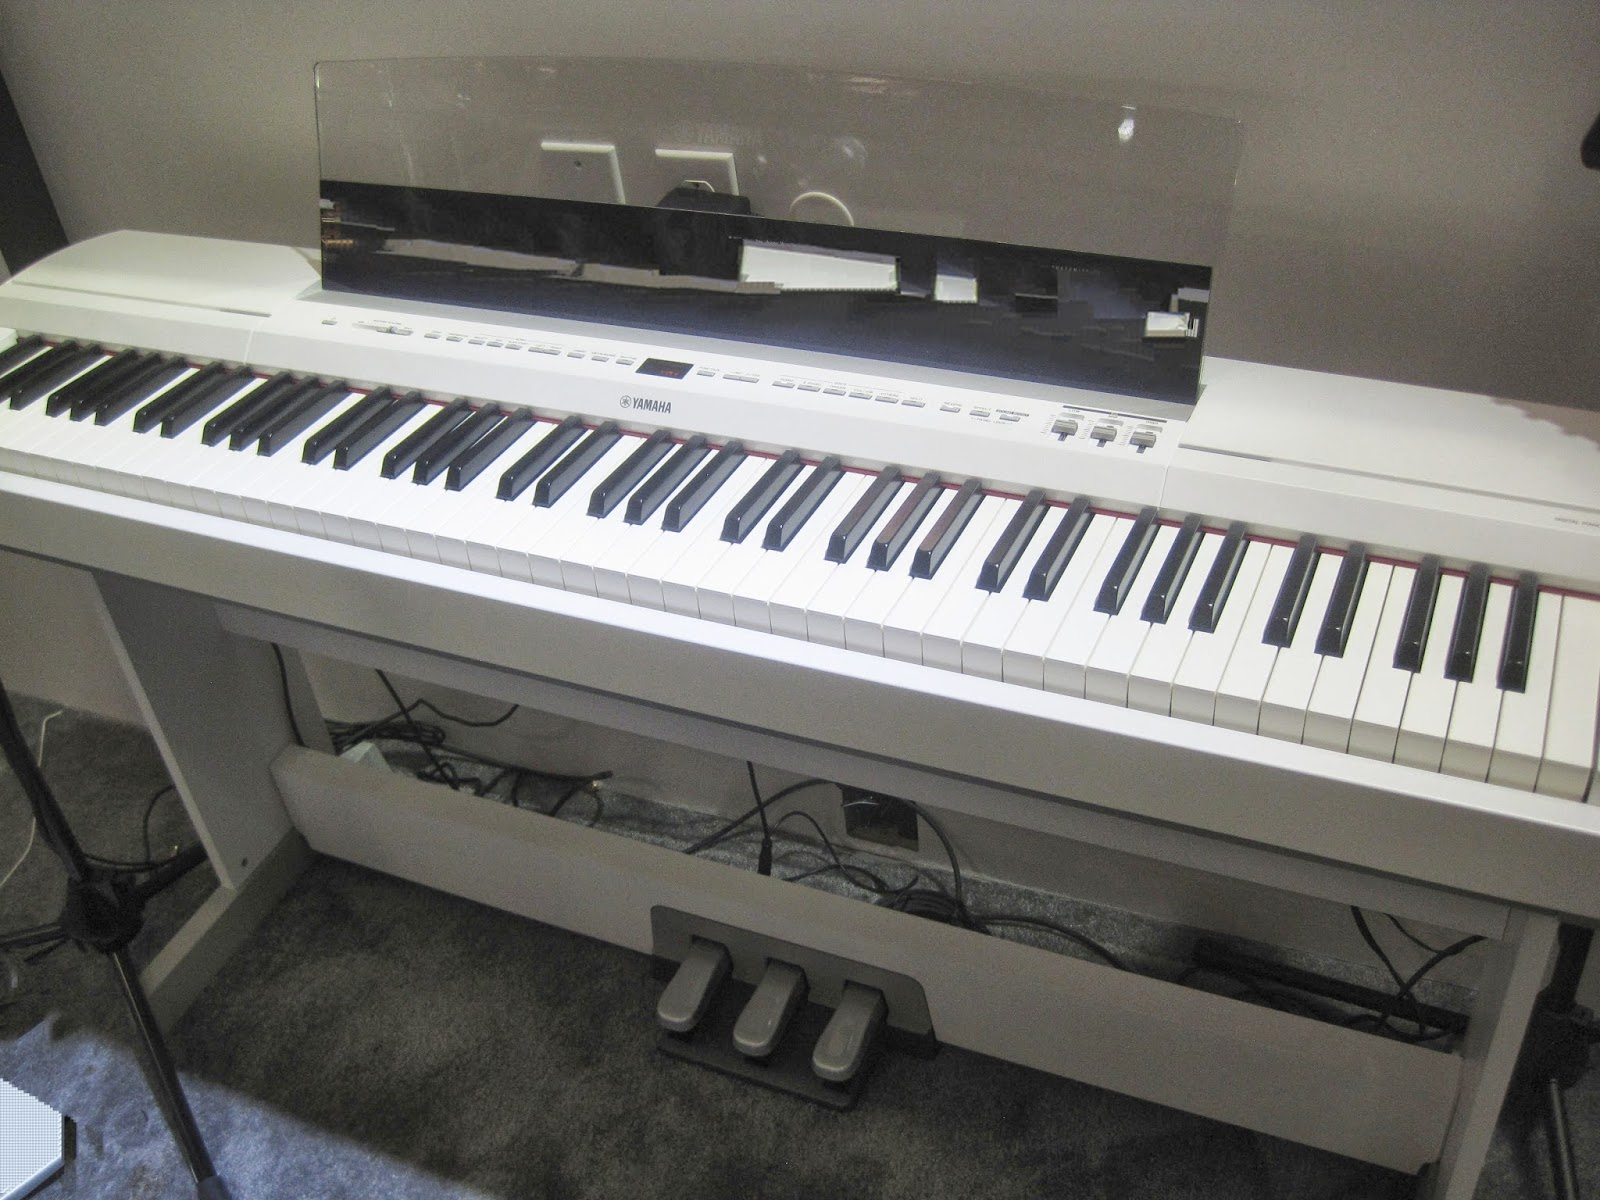 Az piano reviews review yamaha p255 digital piano for Piano yamaha price list